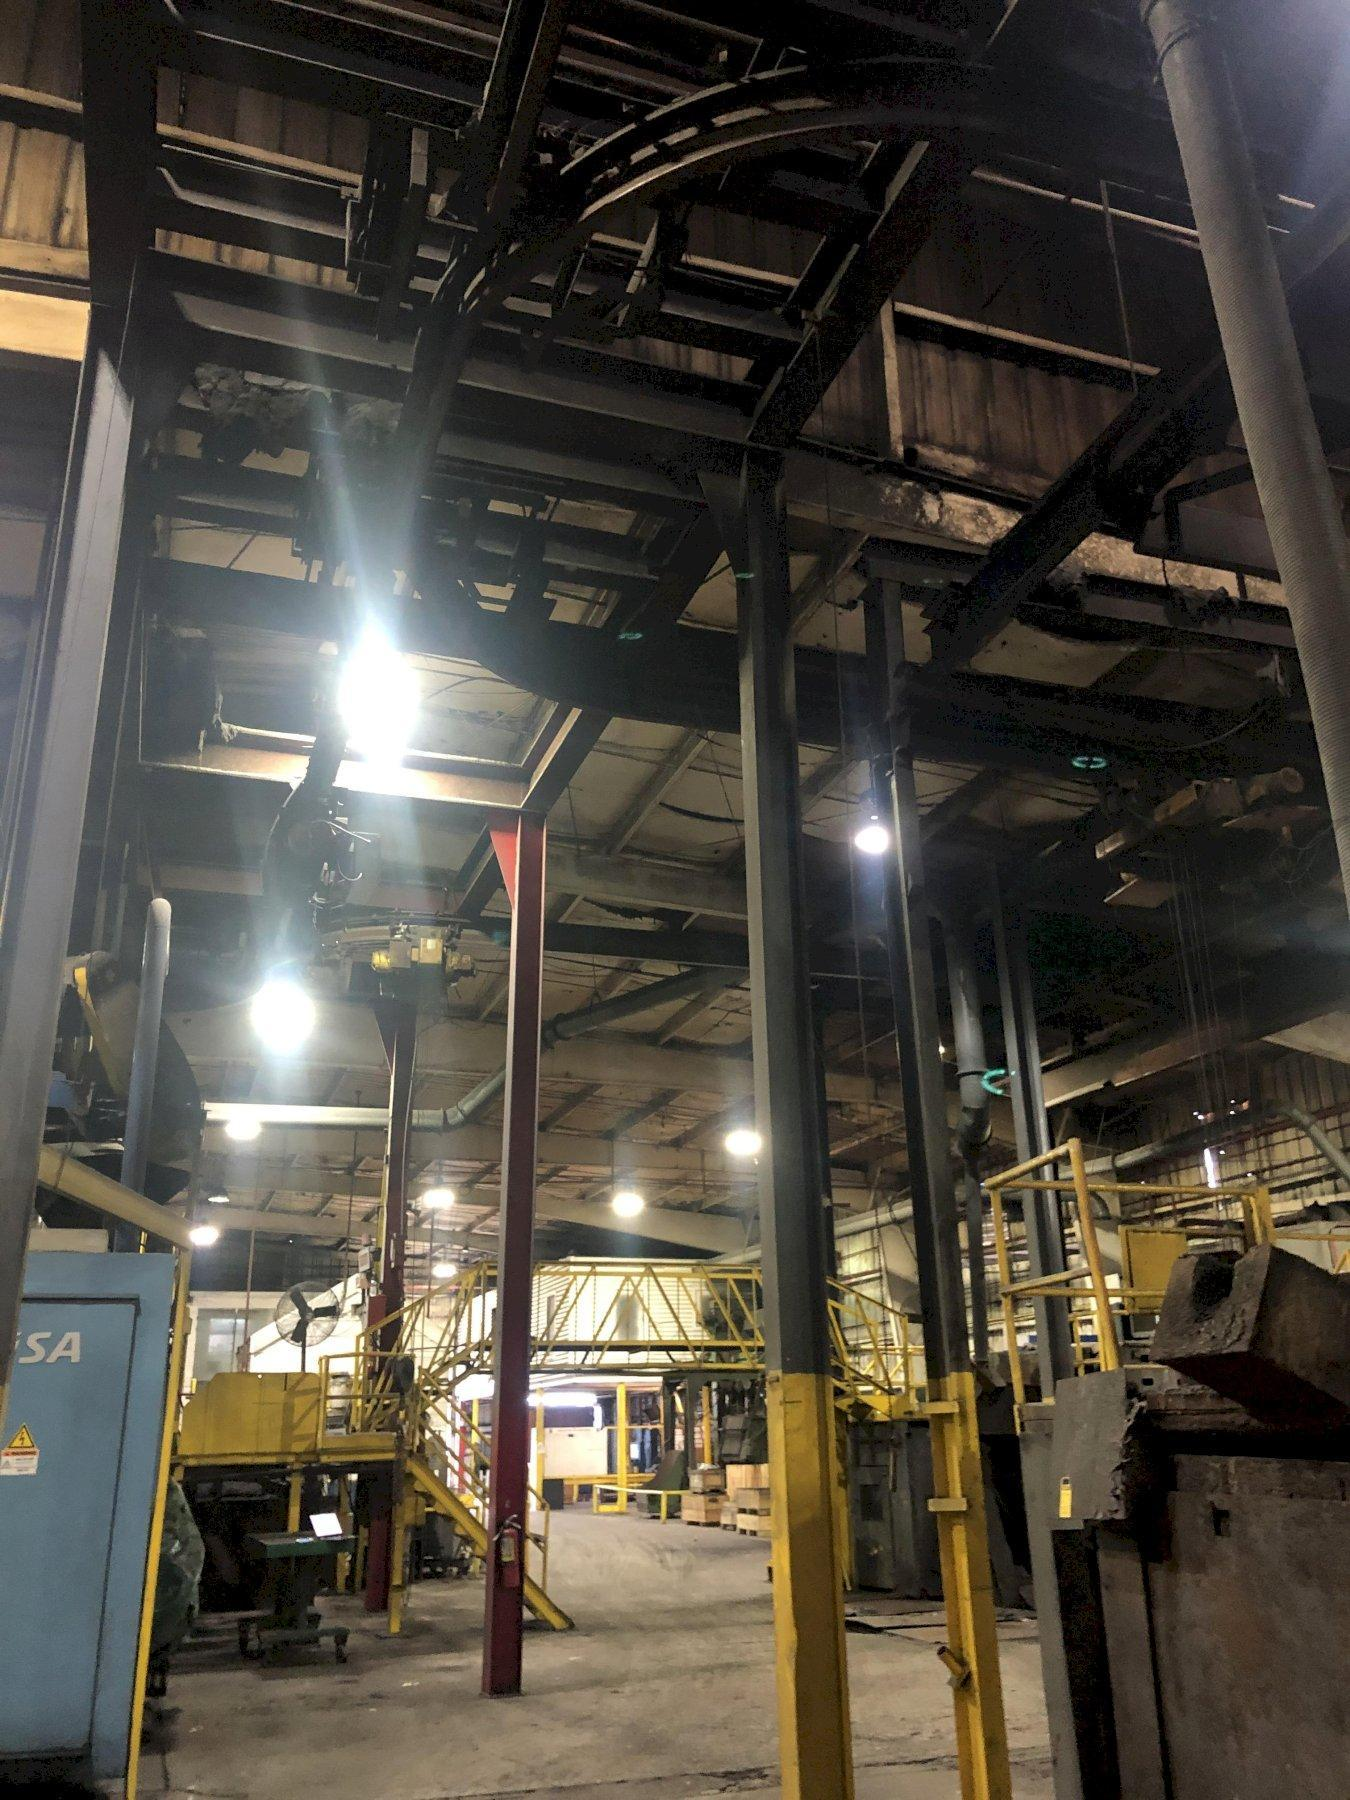 MONORAIL SYSTEM FOR THE HOT METAL HOISTS